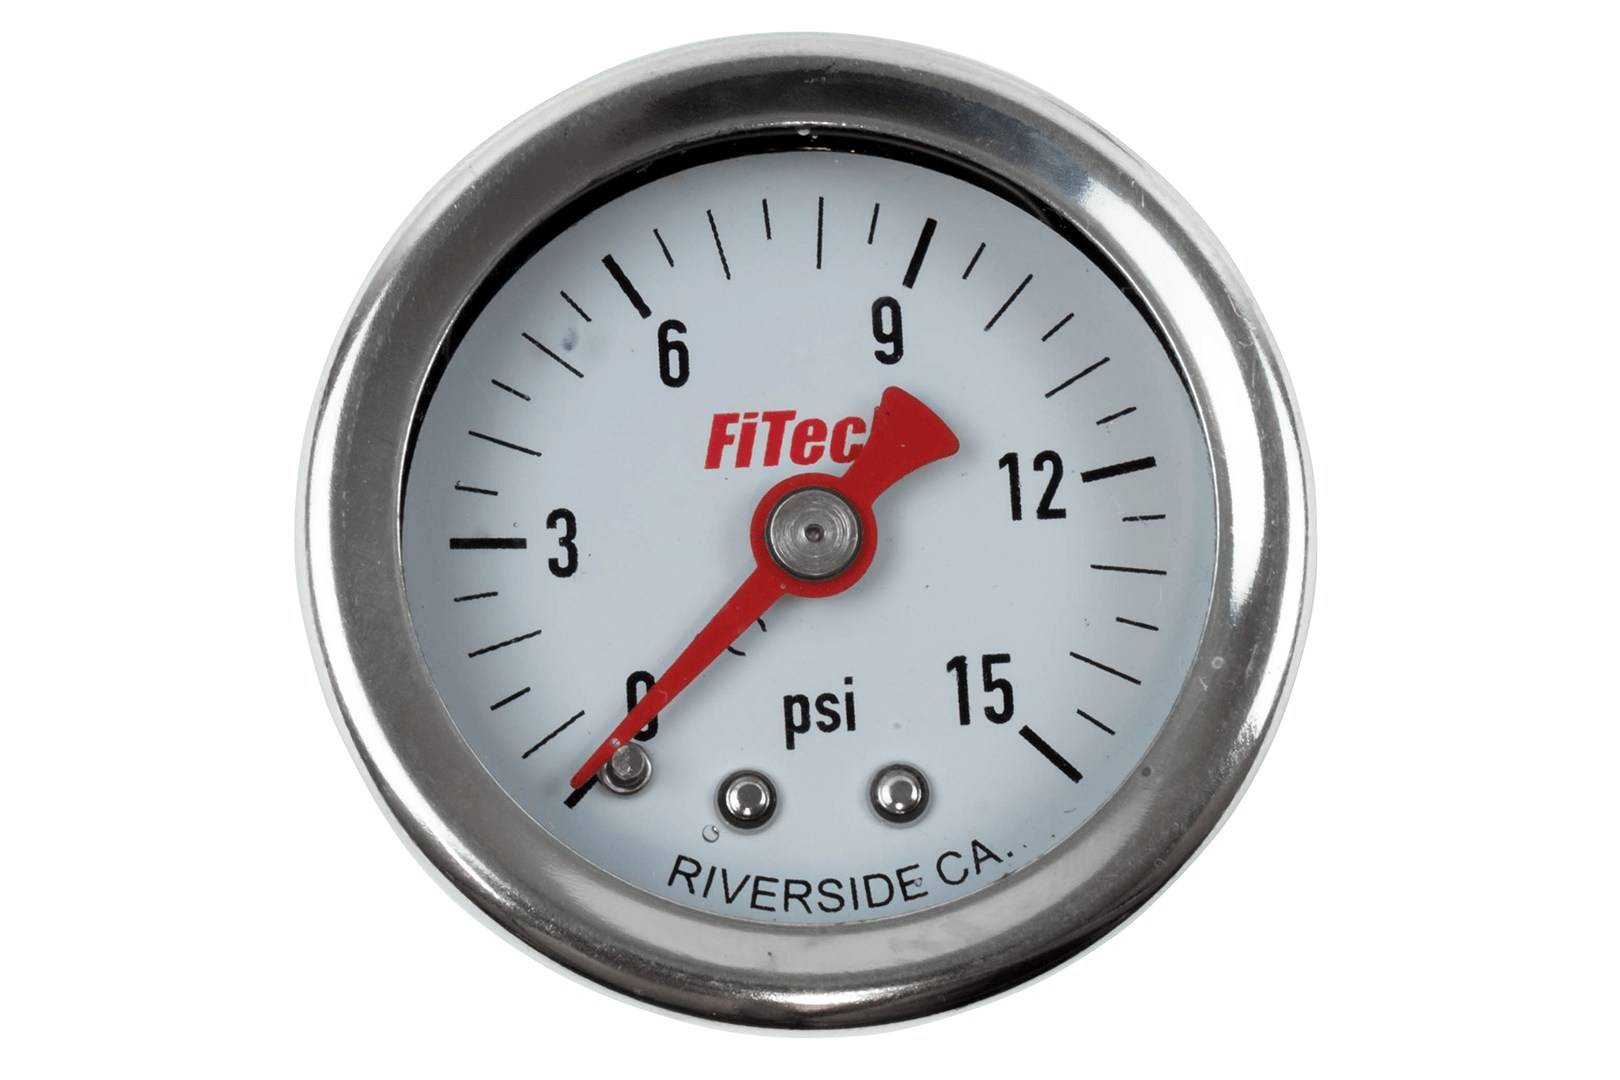 80118 - 0-15 Oil Filled Pressure Gauge - FiTech